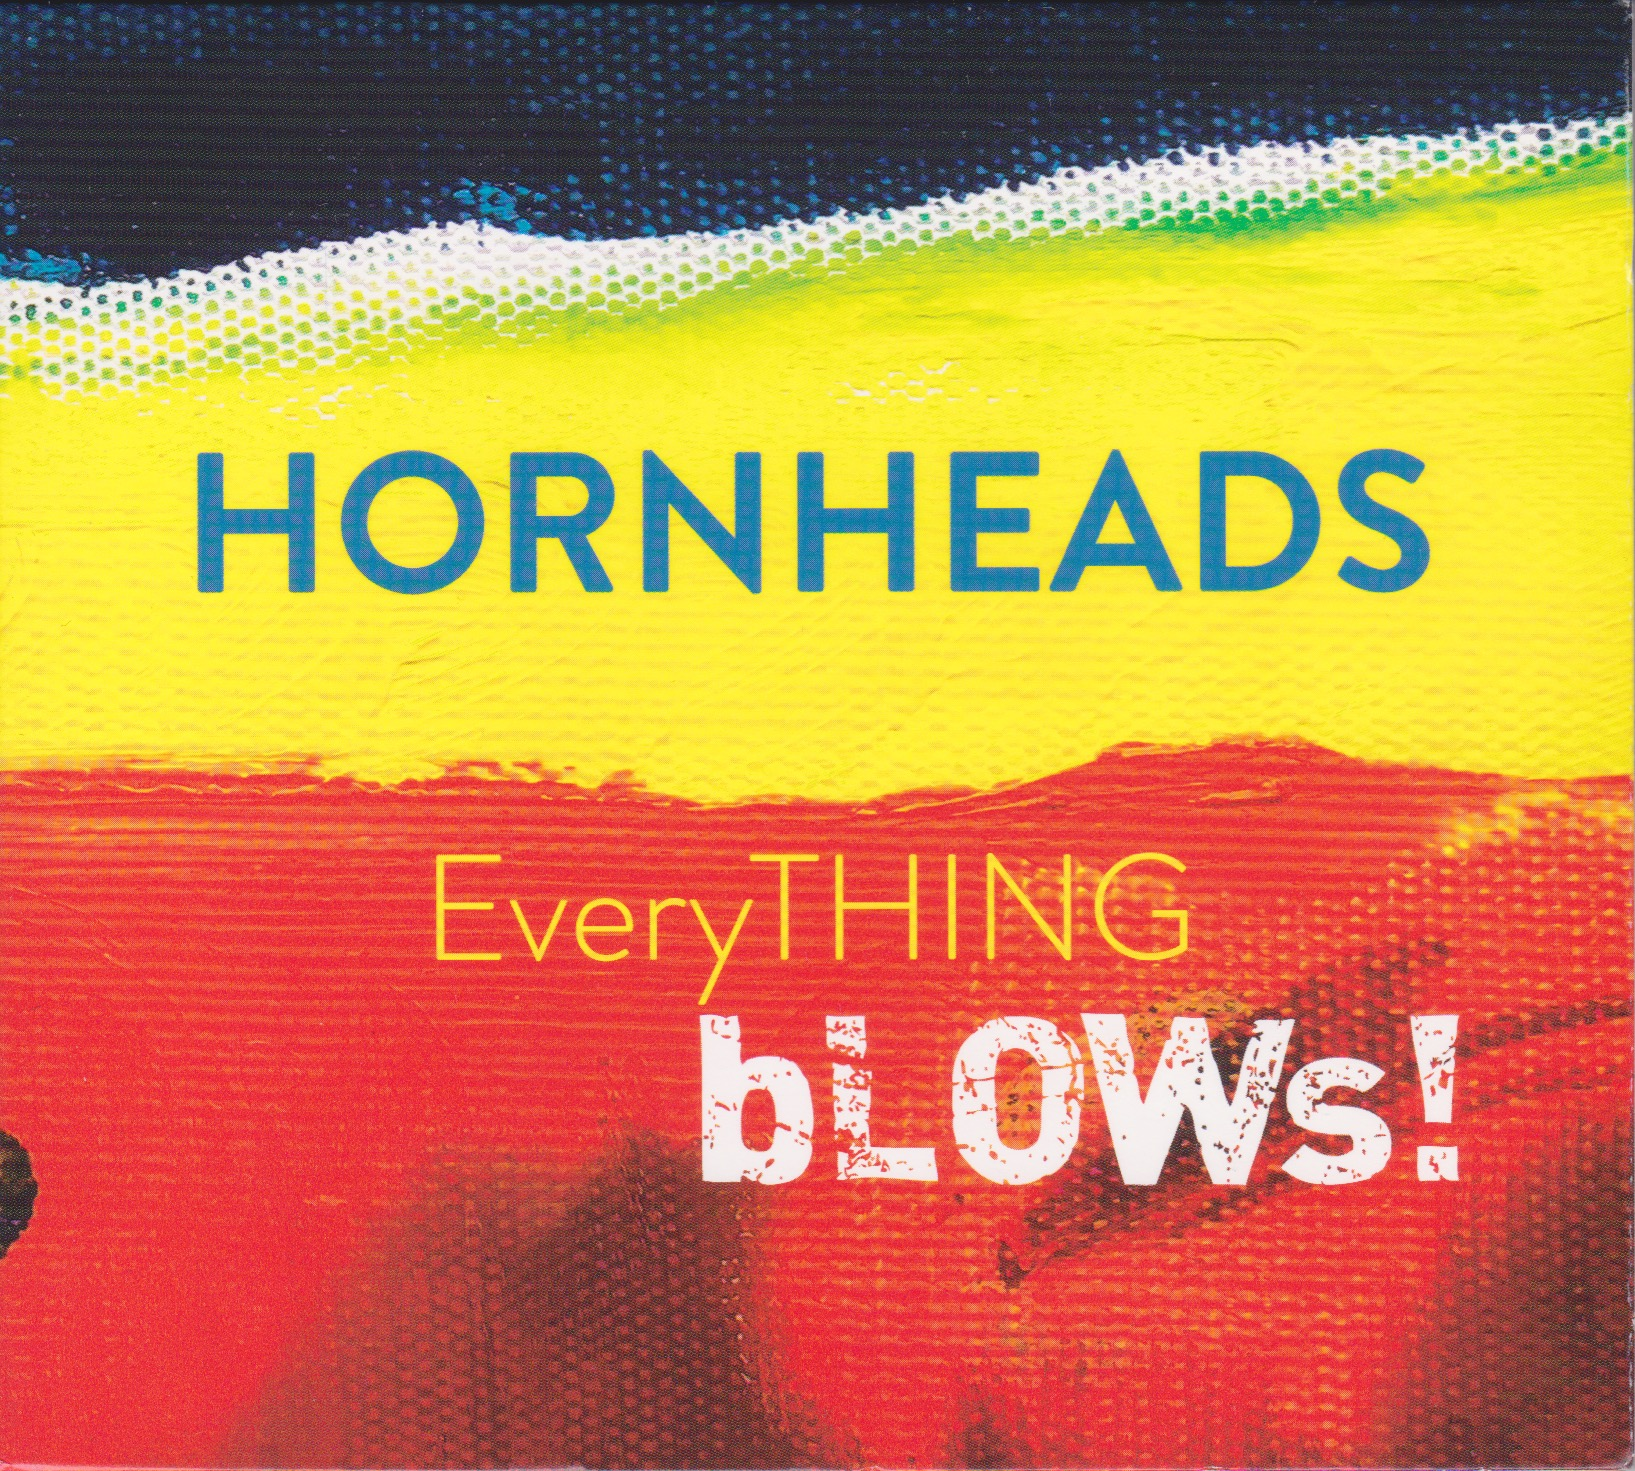 EveryTHING bLOWs! – available now!!